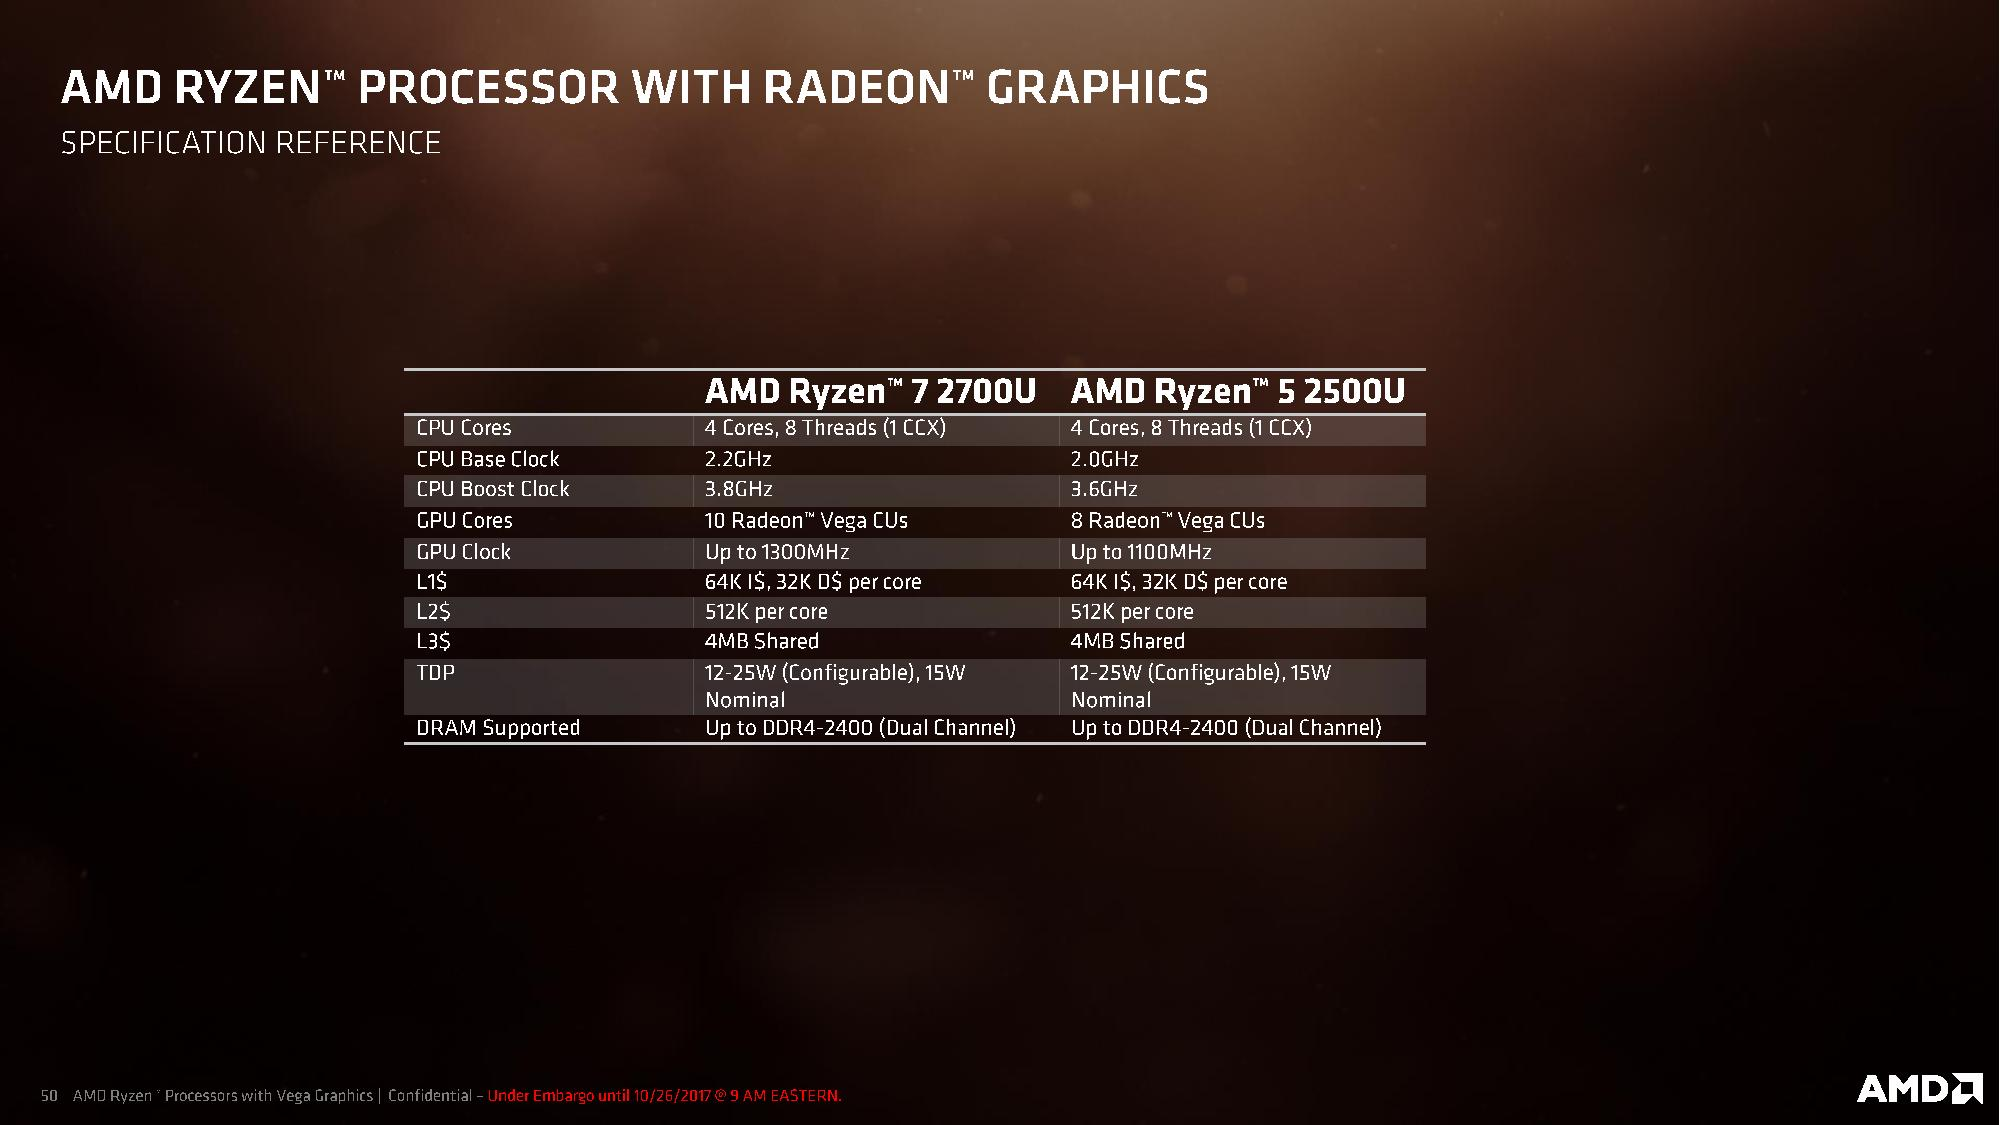 The specs of the first two mobile Ryzen parts.